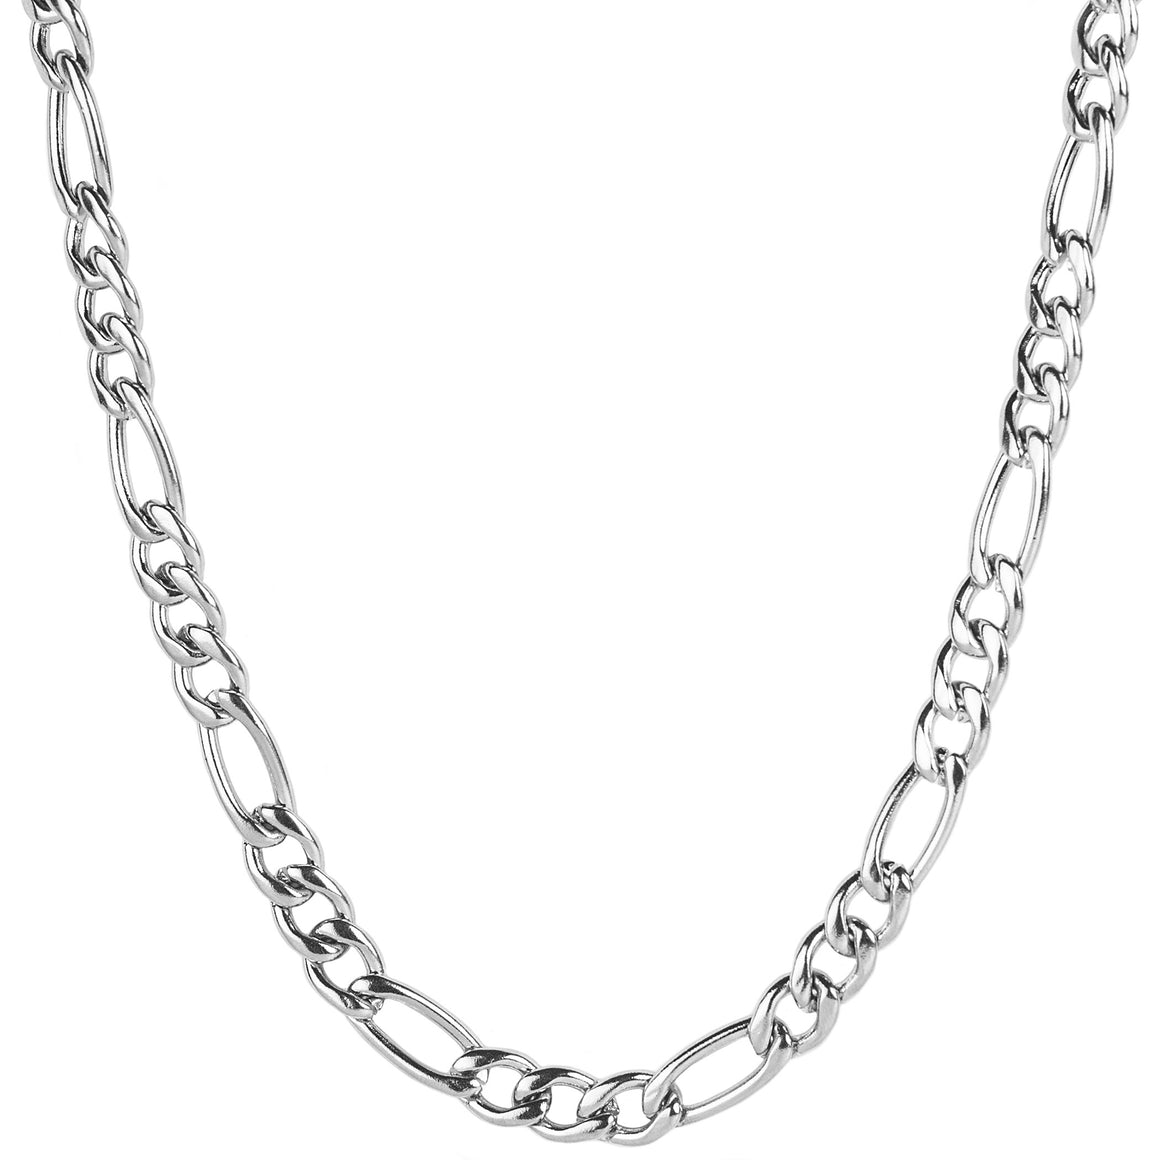 Crucible Men's Stainless Steel Polished Figaro Chain Necklace